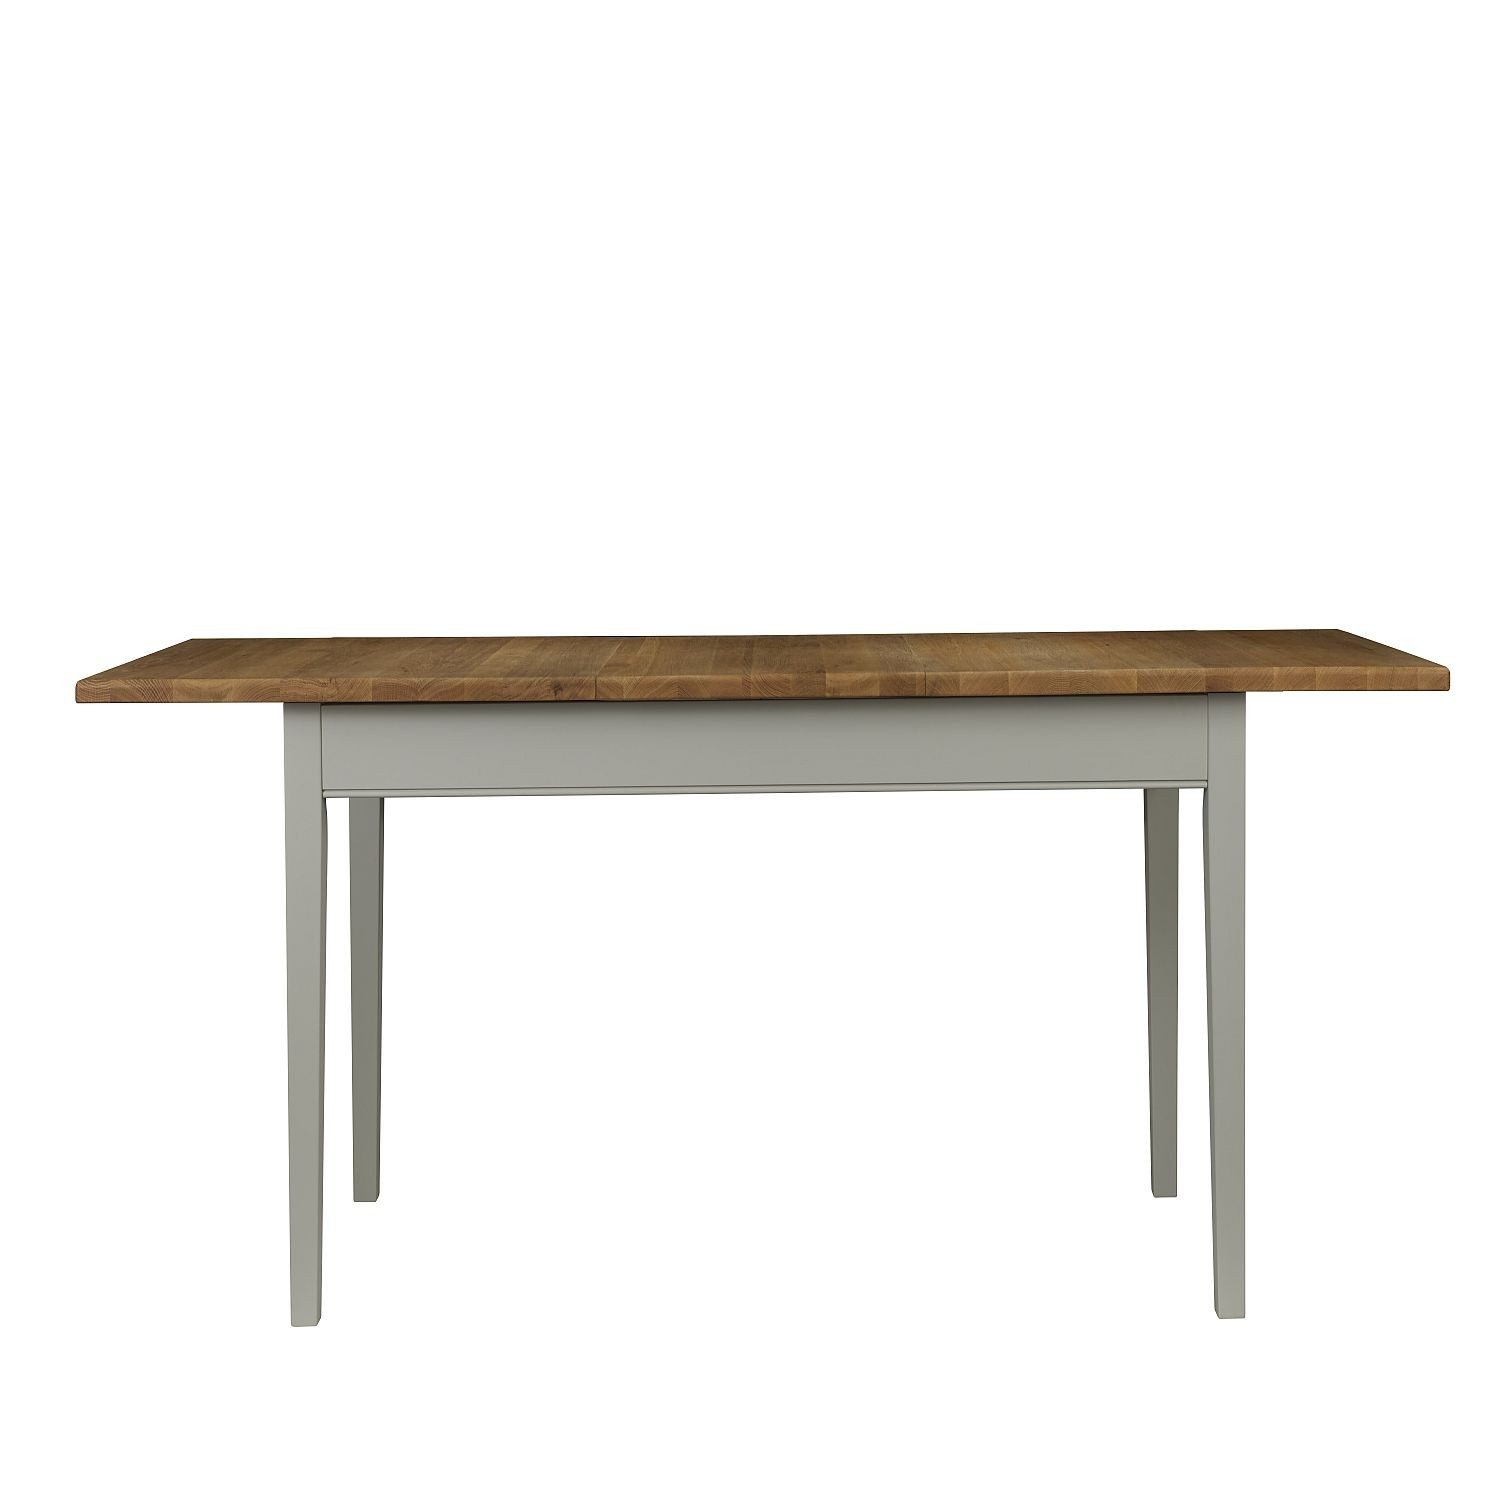 Extending Dining Table Southwark 180cm Extending Dining Table